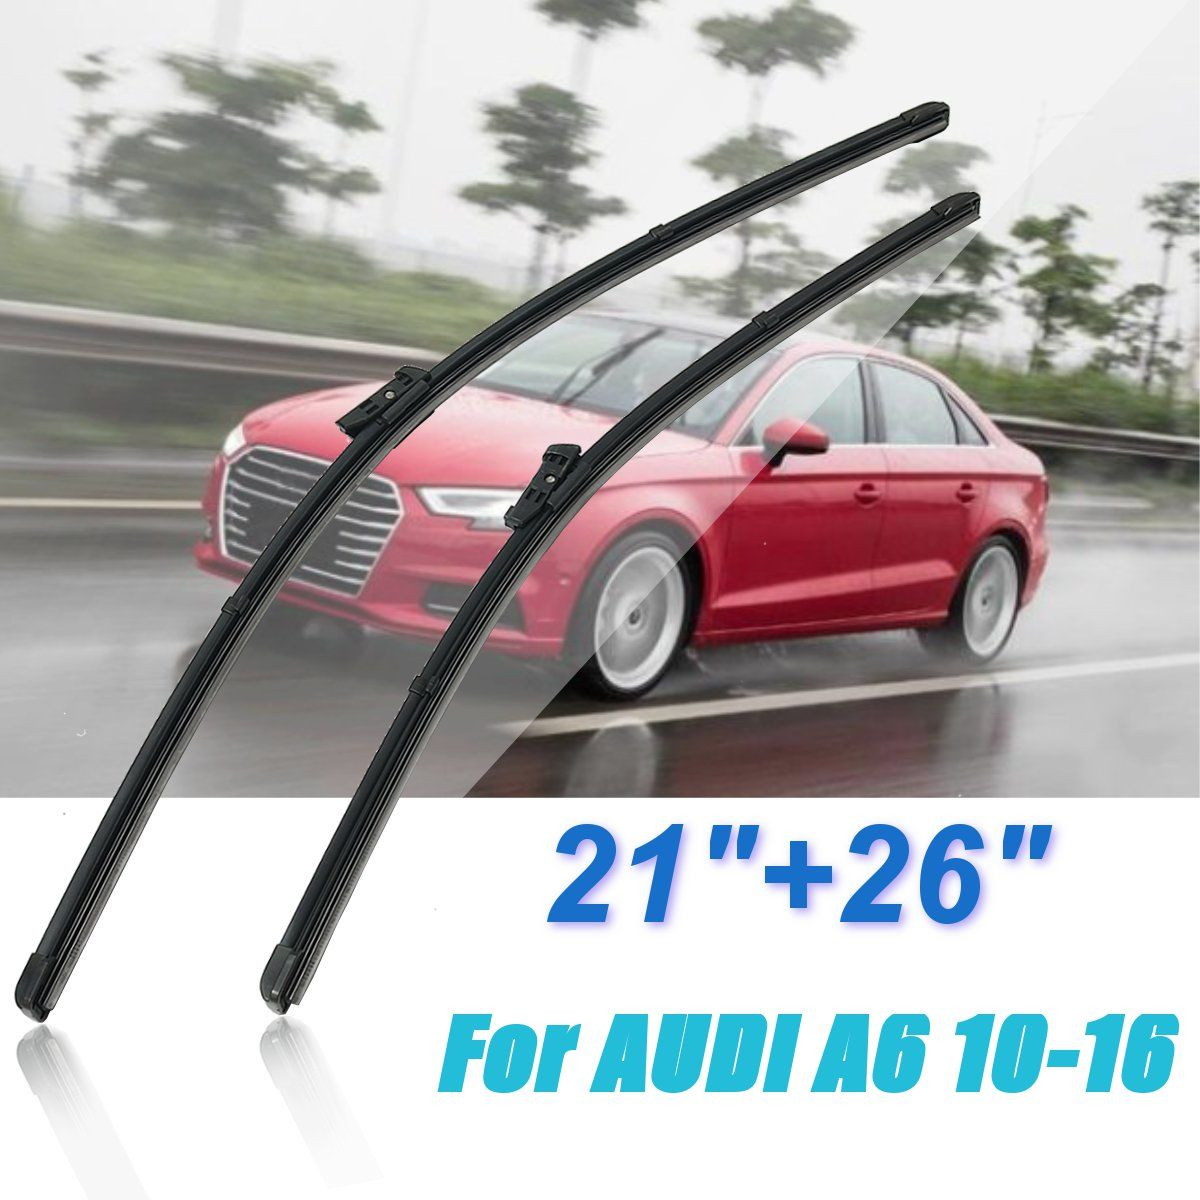 1Pair Front Wiper Windscreen Blades For Audi A6 Model C7 2010 2011 2012 2013 2014 2015 2016 21inch+26inch